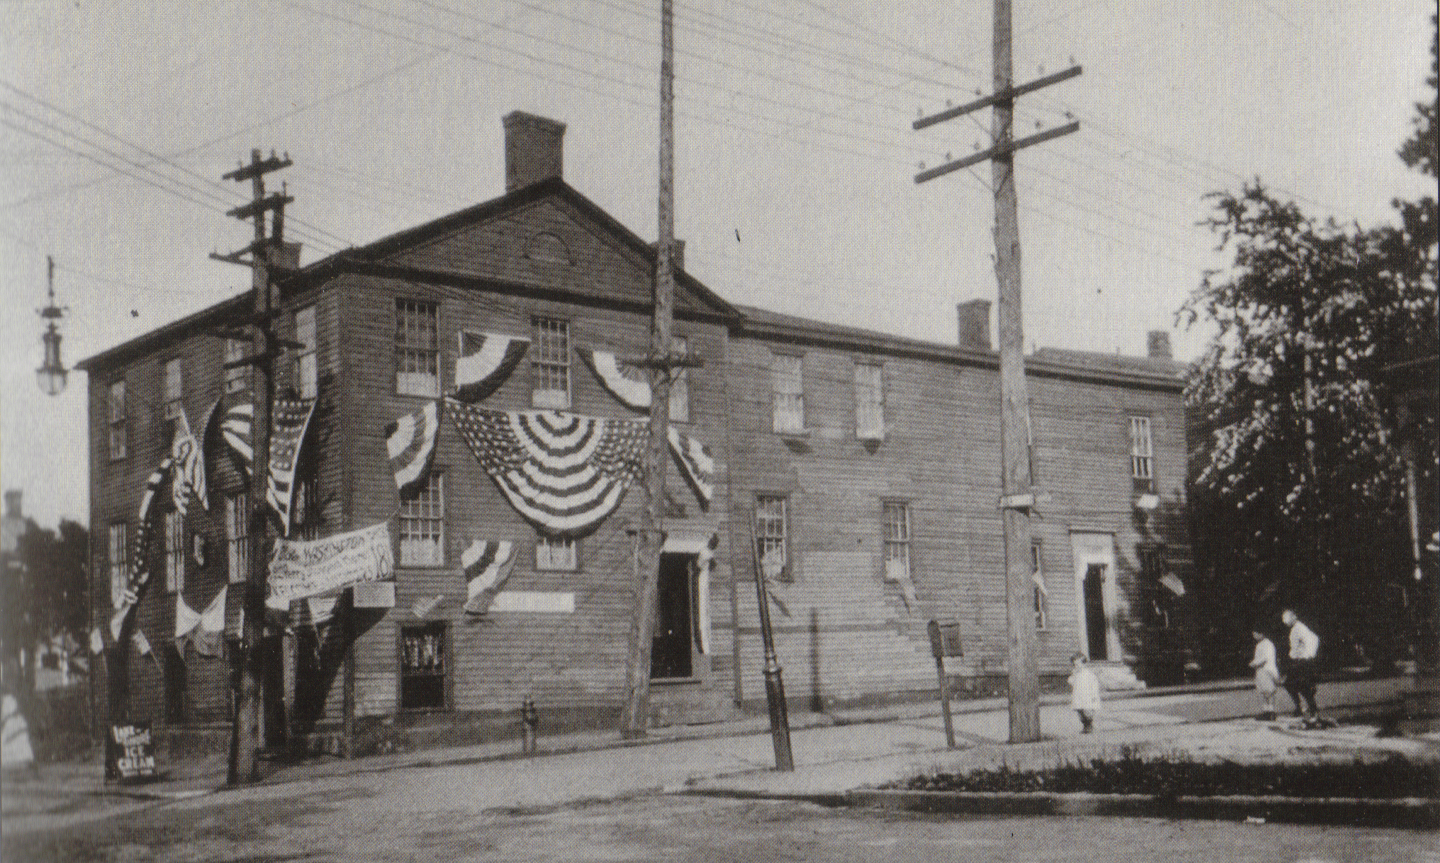 Original owner John Dickson sold the enormously popular tavern in 1829. Subsequent owners could not sustain its initial success as Erie's premier watering hole, and it was eventually converted into housing and then the Perry Memorial House Museum from 1963-2004.